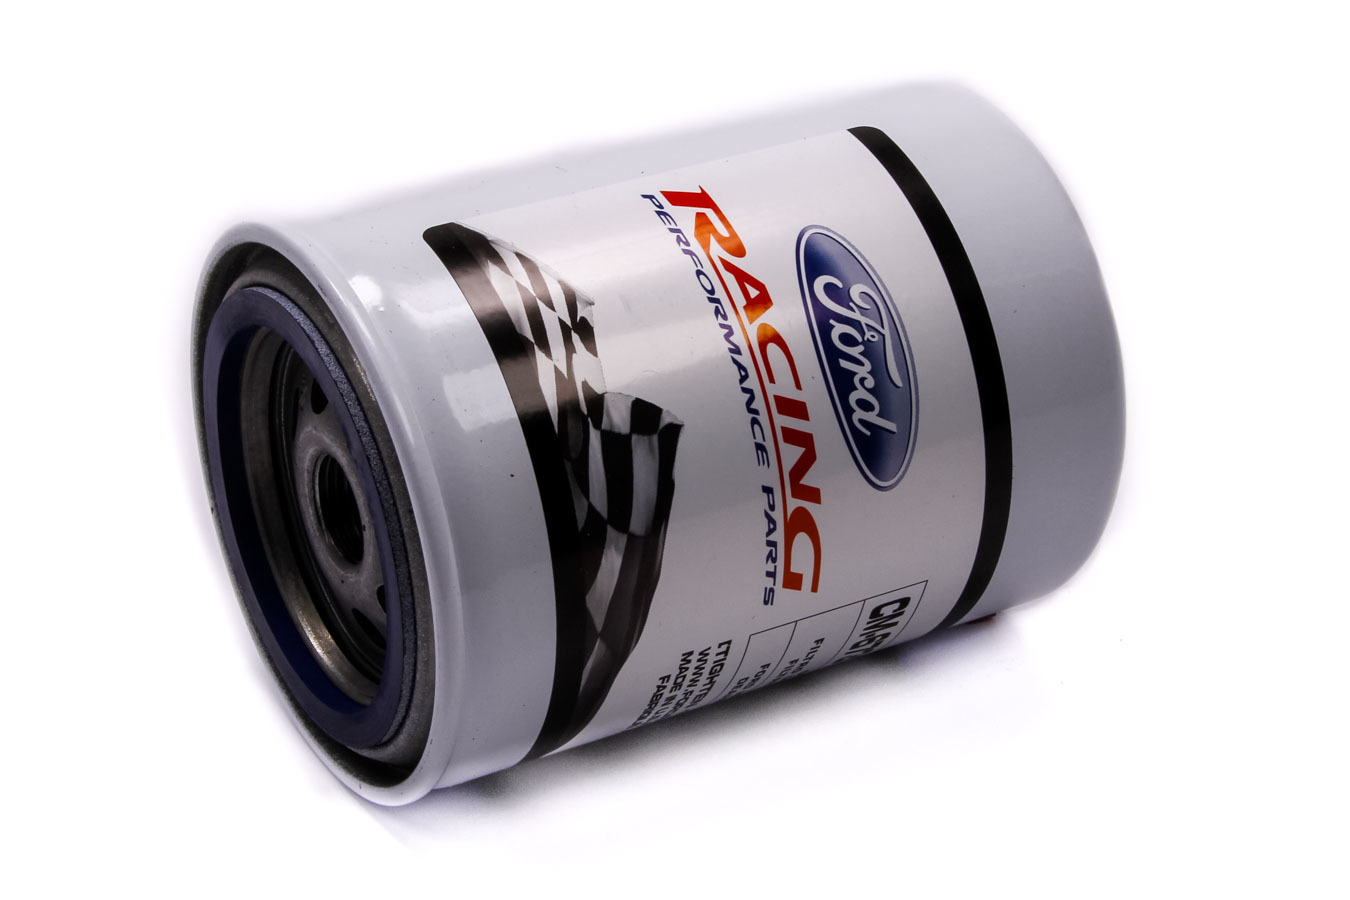 Ford CM6731-FL1A Oil Filter, High Performance, Canister, Screw-On, 13/16-16 in Thread, Steel, White, Ford, Each